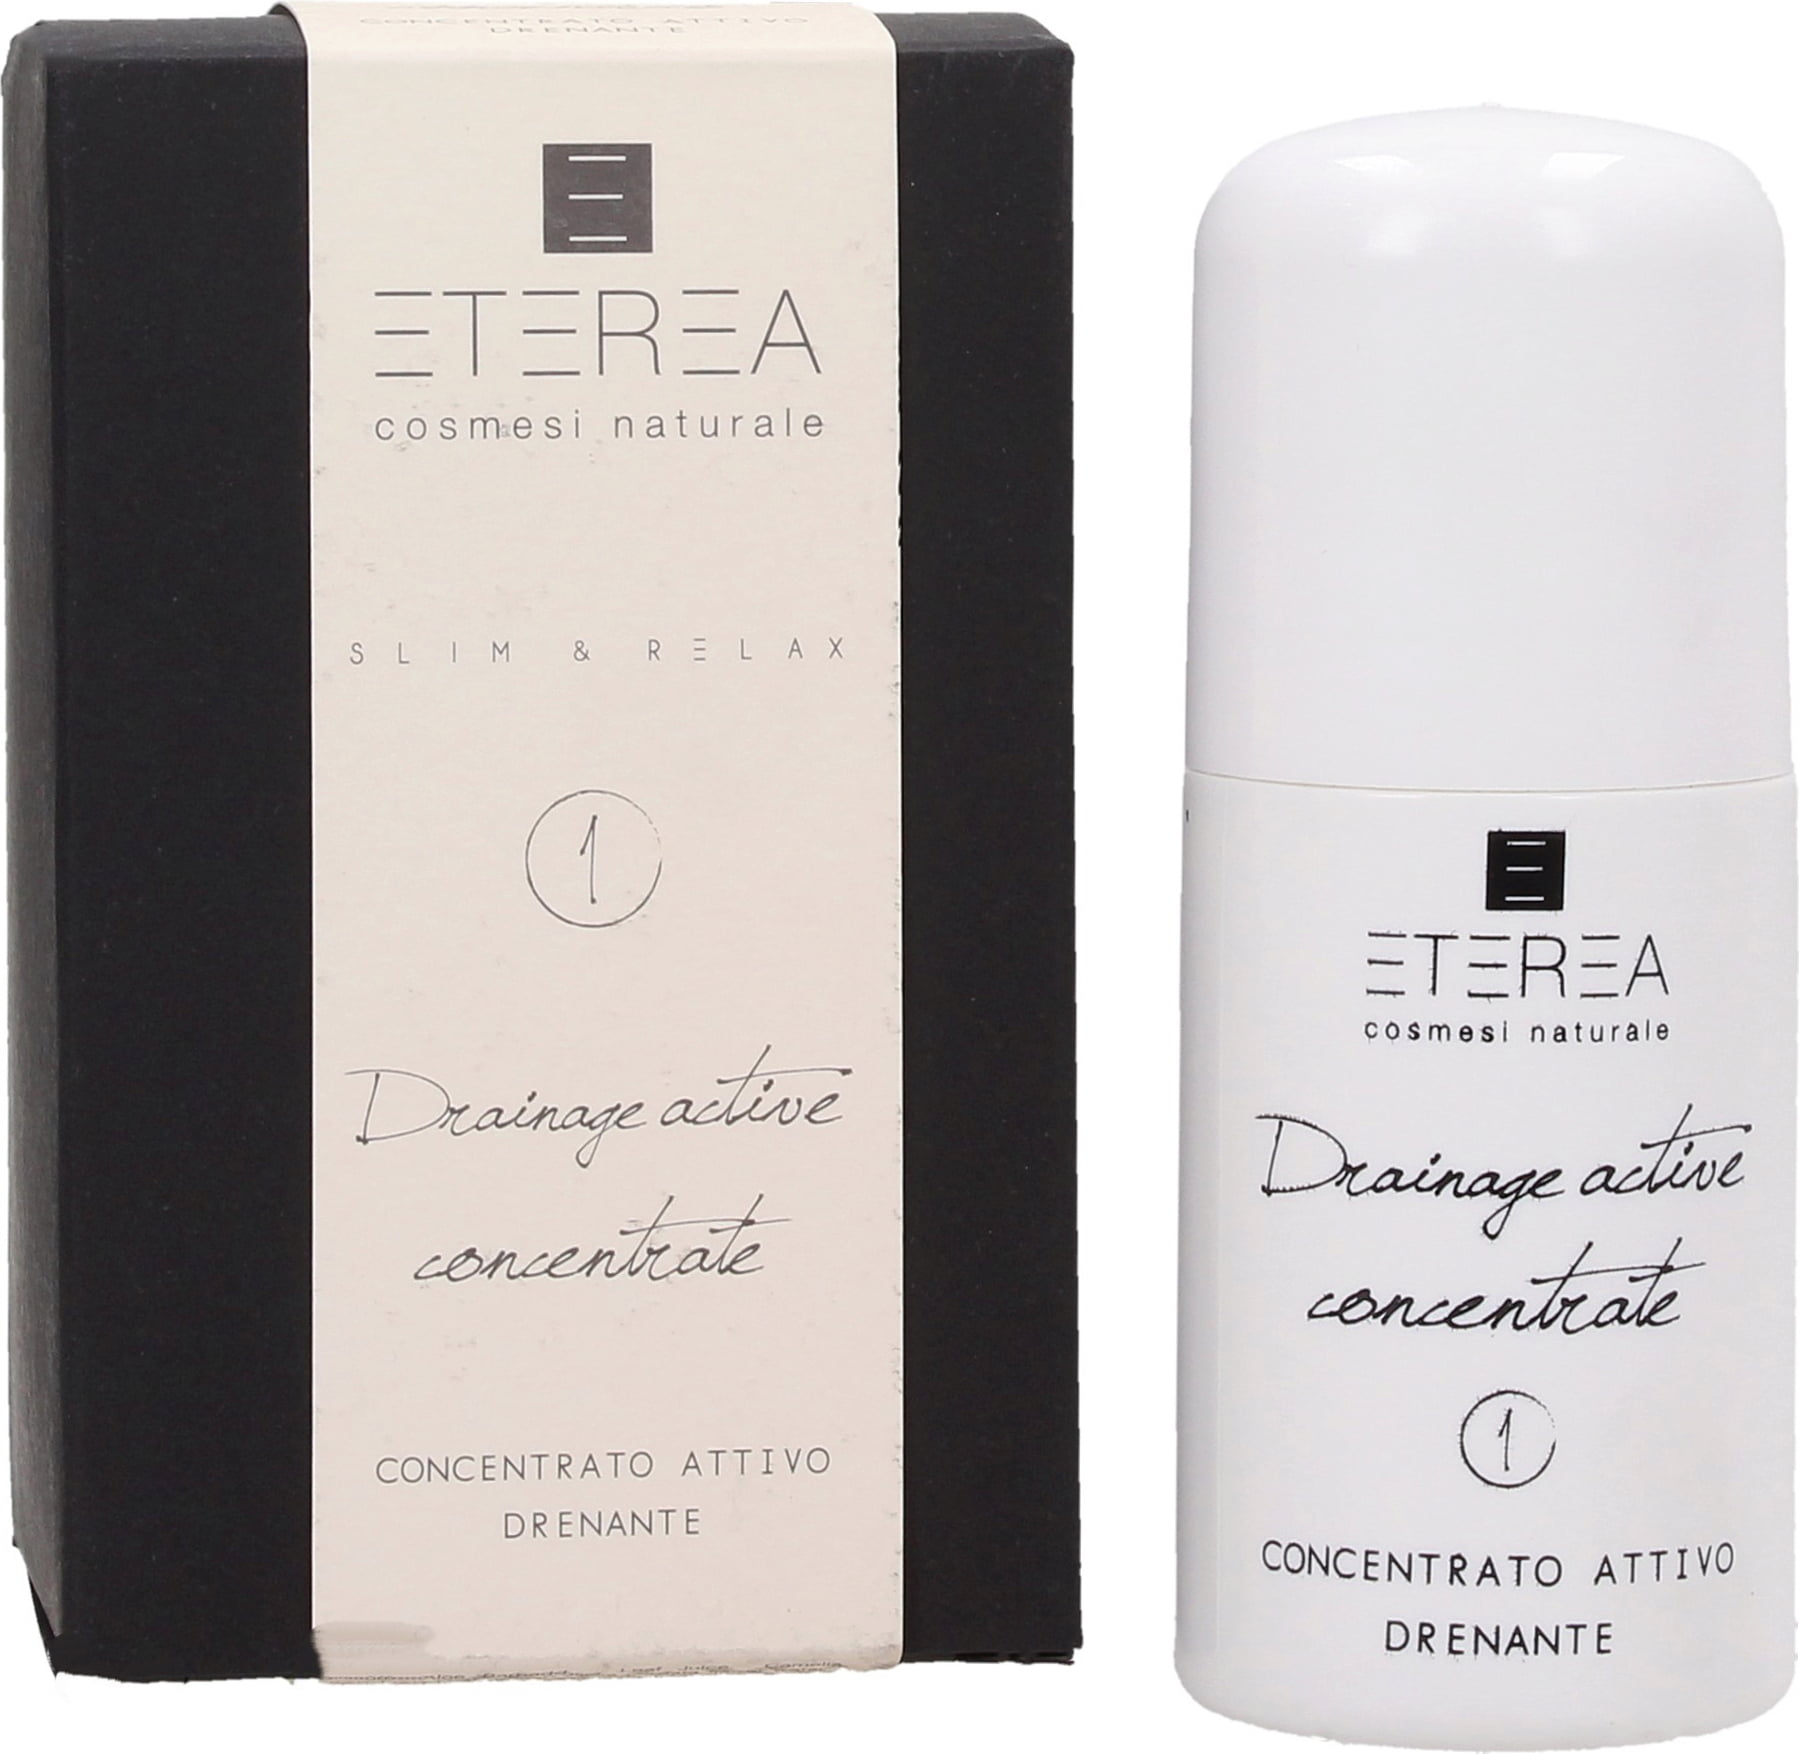 ETEREA Cosmesi Naturale Slim & Relax Drainage Active Concentrate - 50 ml von ETEREA Cosmesi Naturale